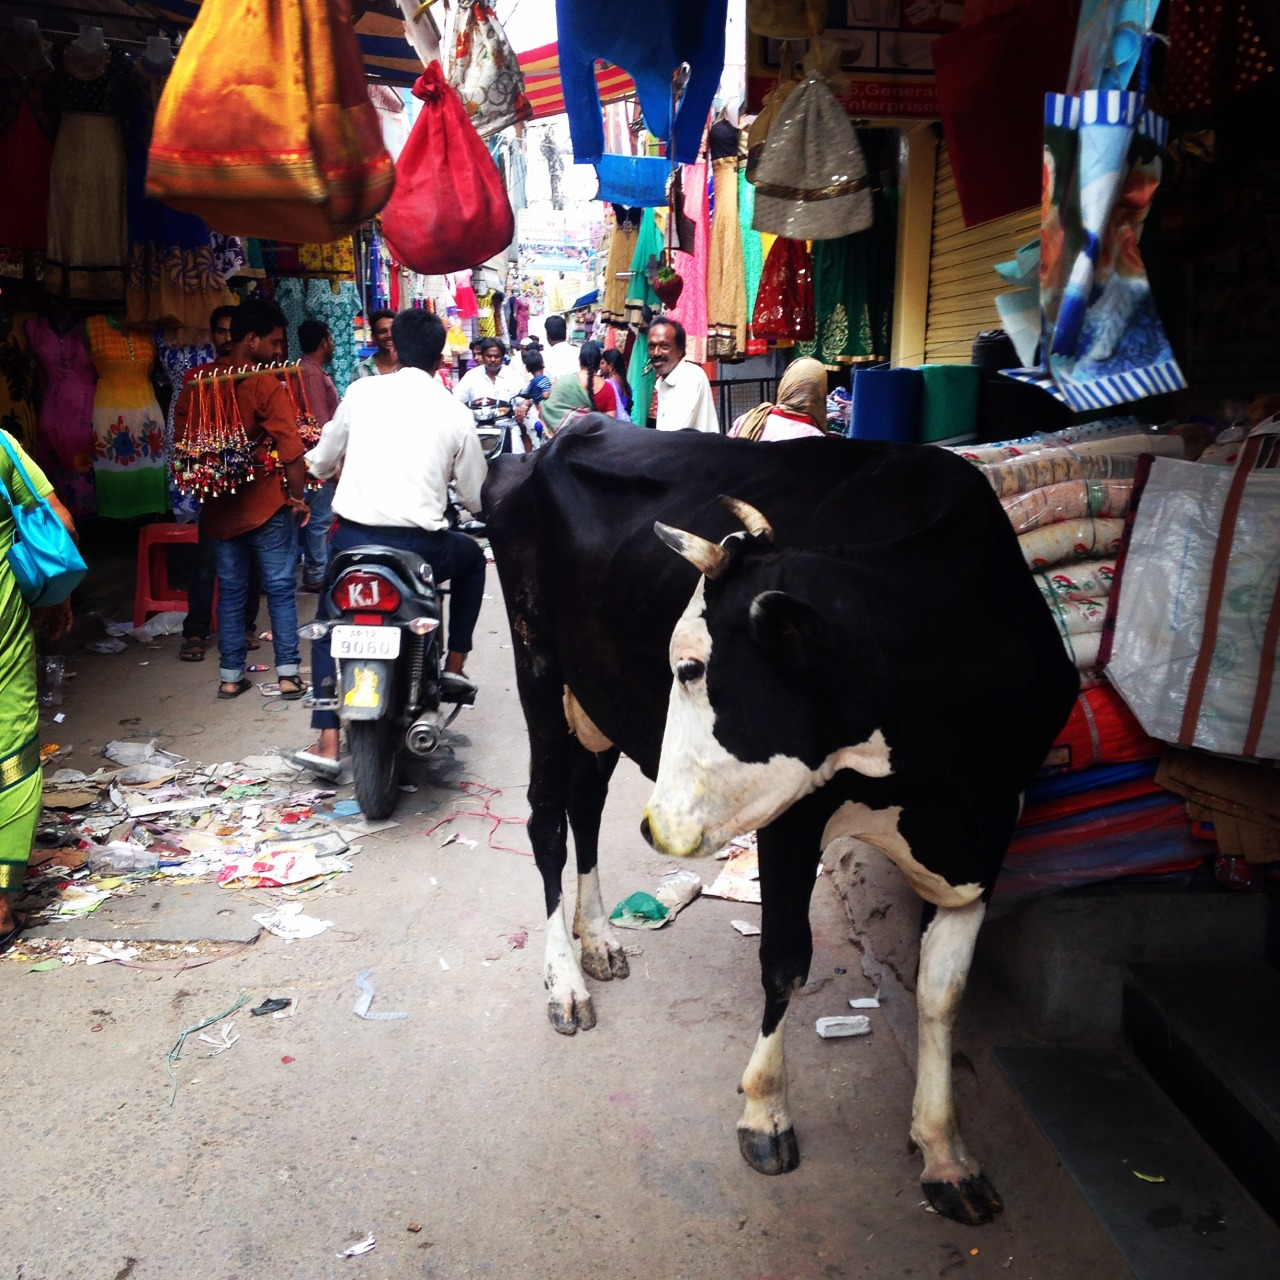 Cow in a market